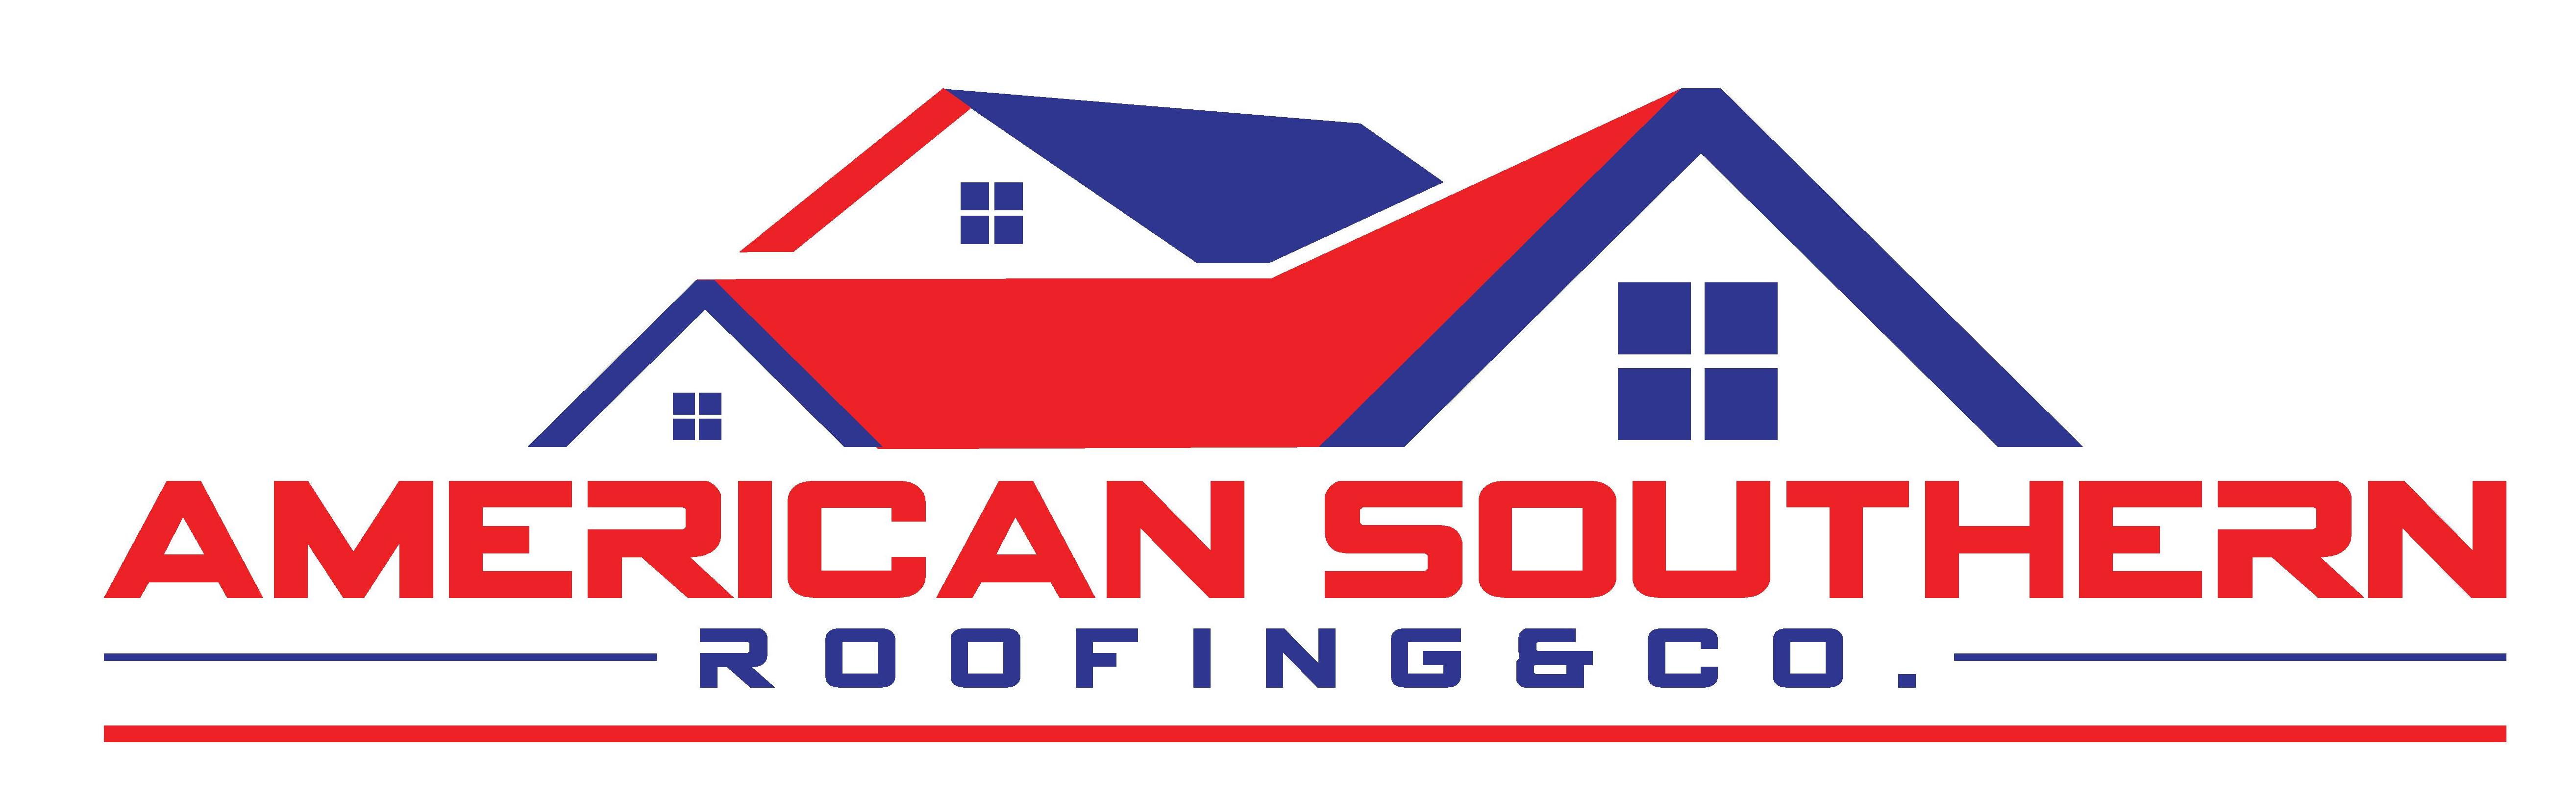 American Southern Roofing Company Summary